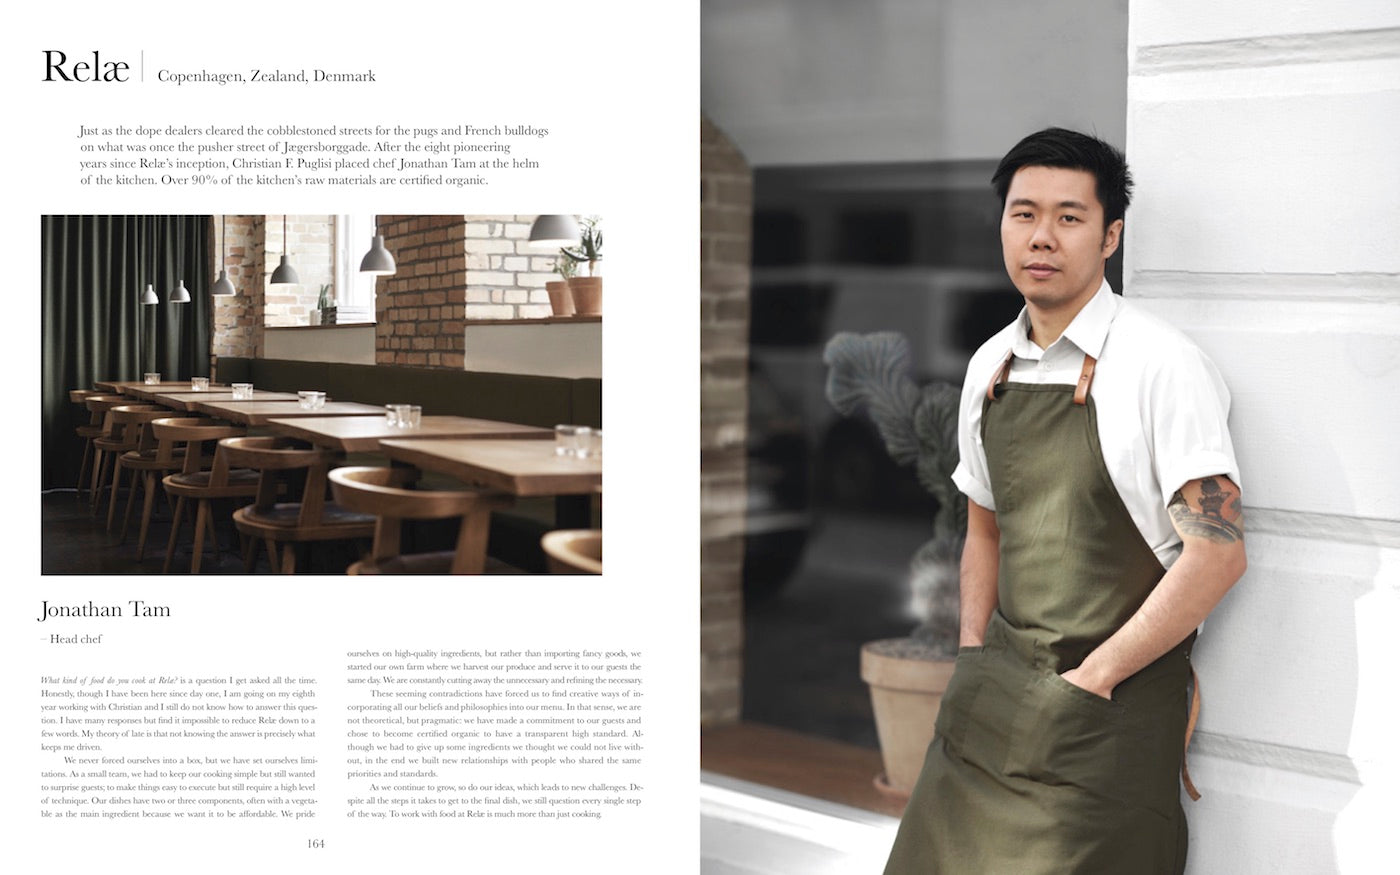 Head chef of Relæ Restaurant Jonathan Tam standing, wearing his cooking uniform and a green apron. (Photo: Michael Jepsen)